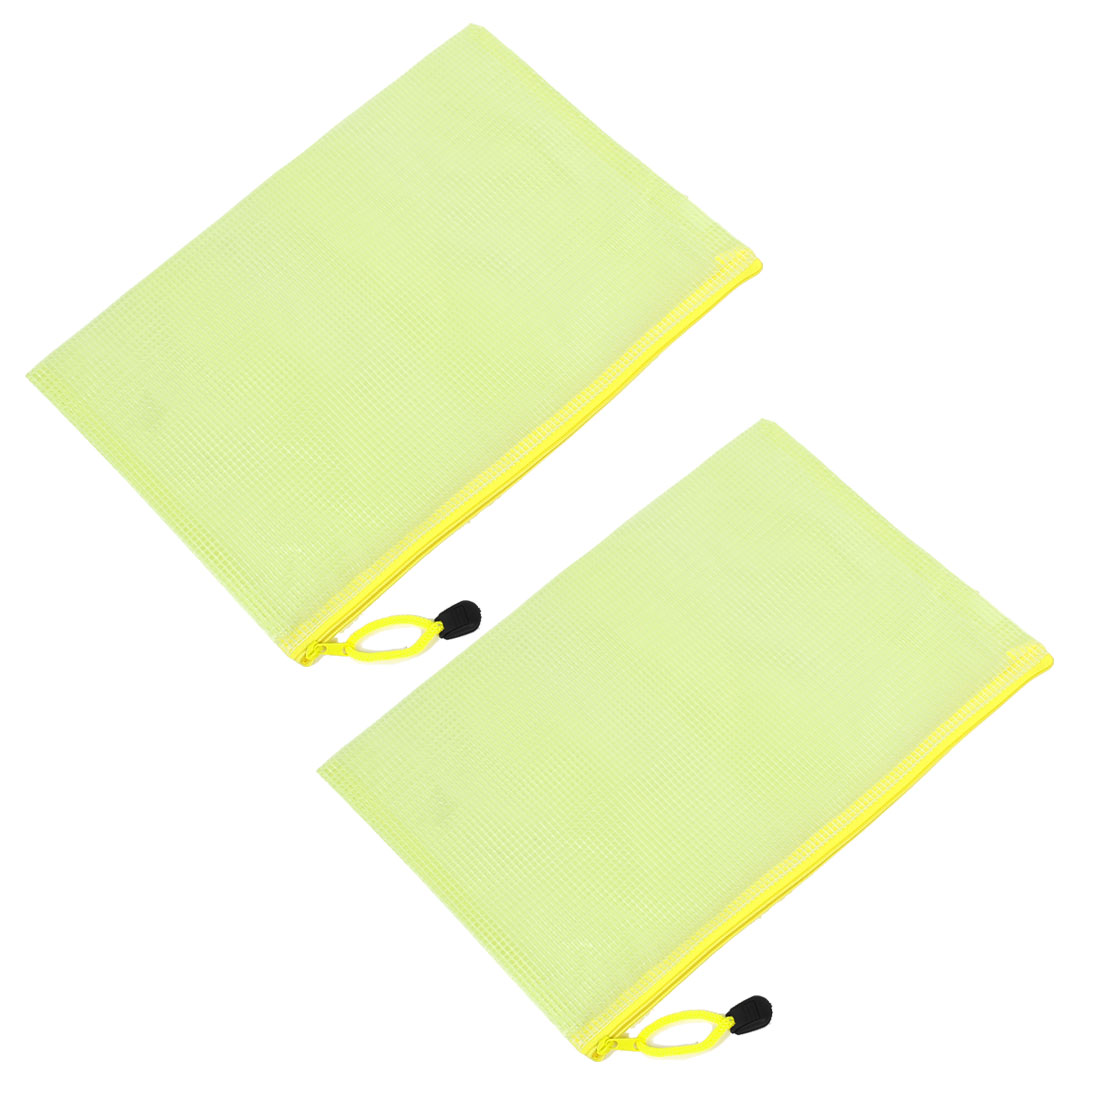 2 Pcs Clear Yellow Plastic Zip up B5 Paper File Bag w Nylon Strap